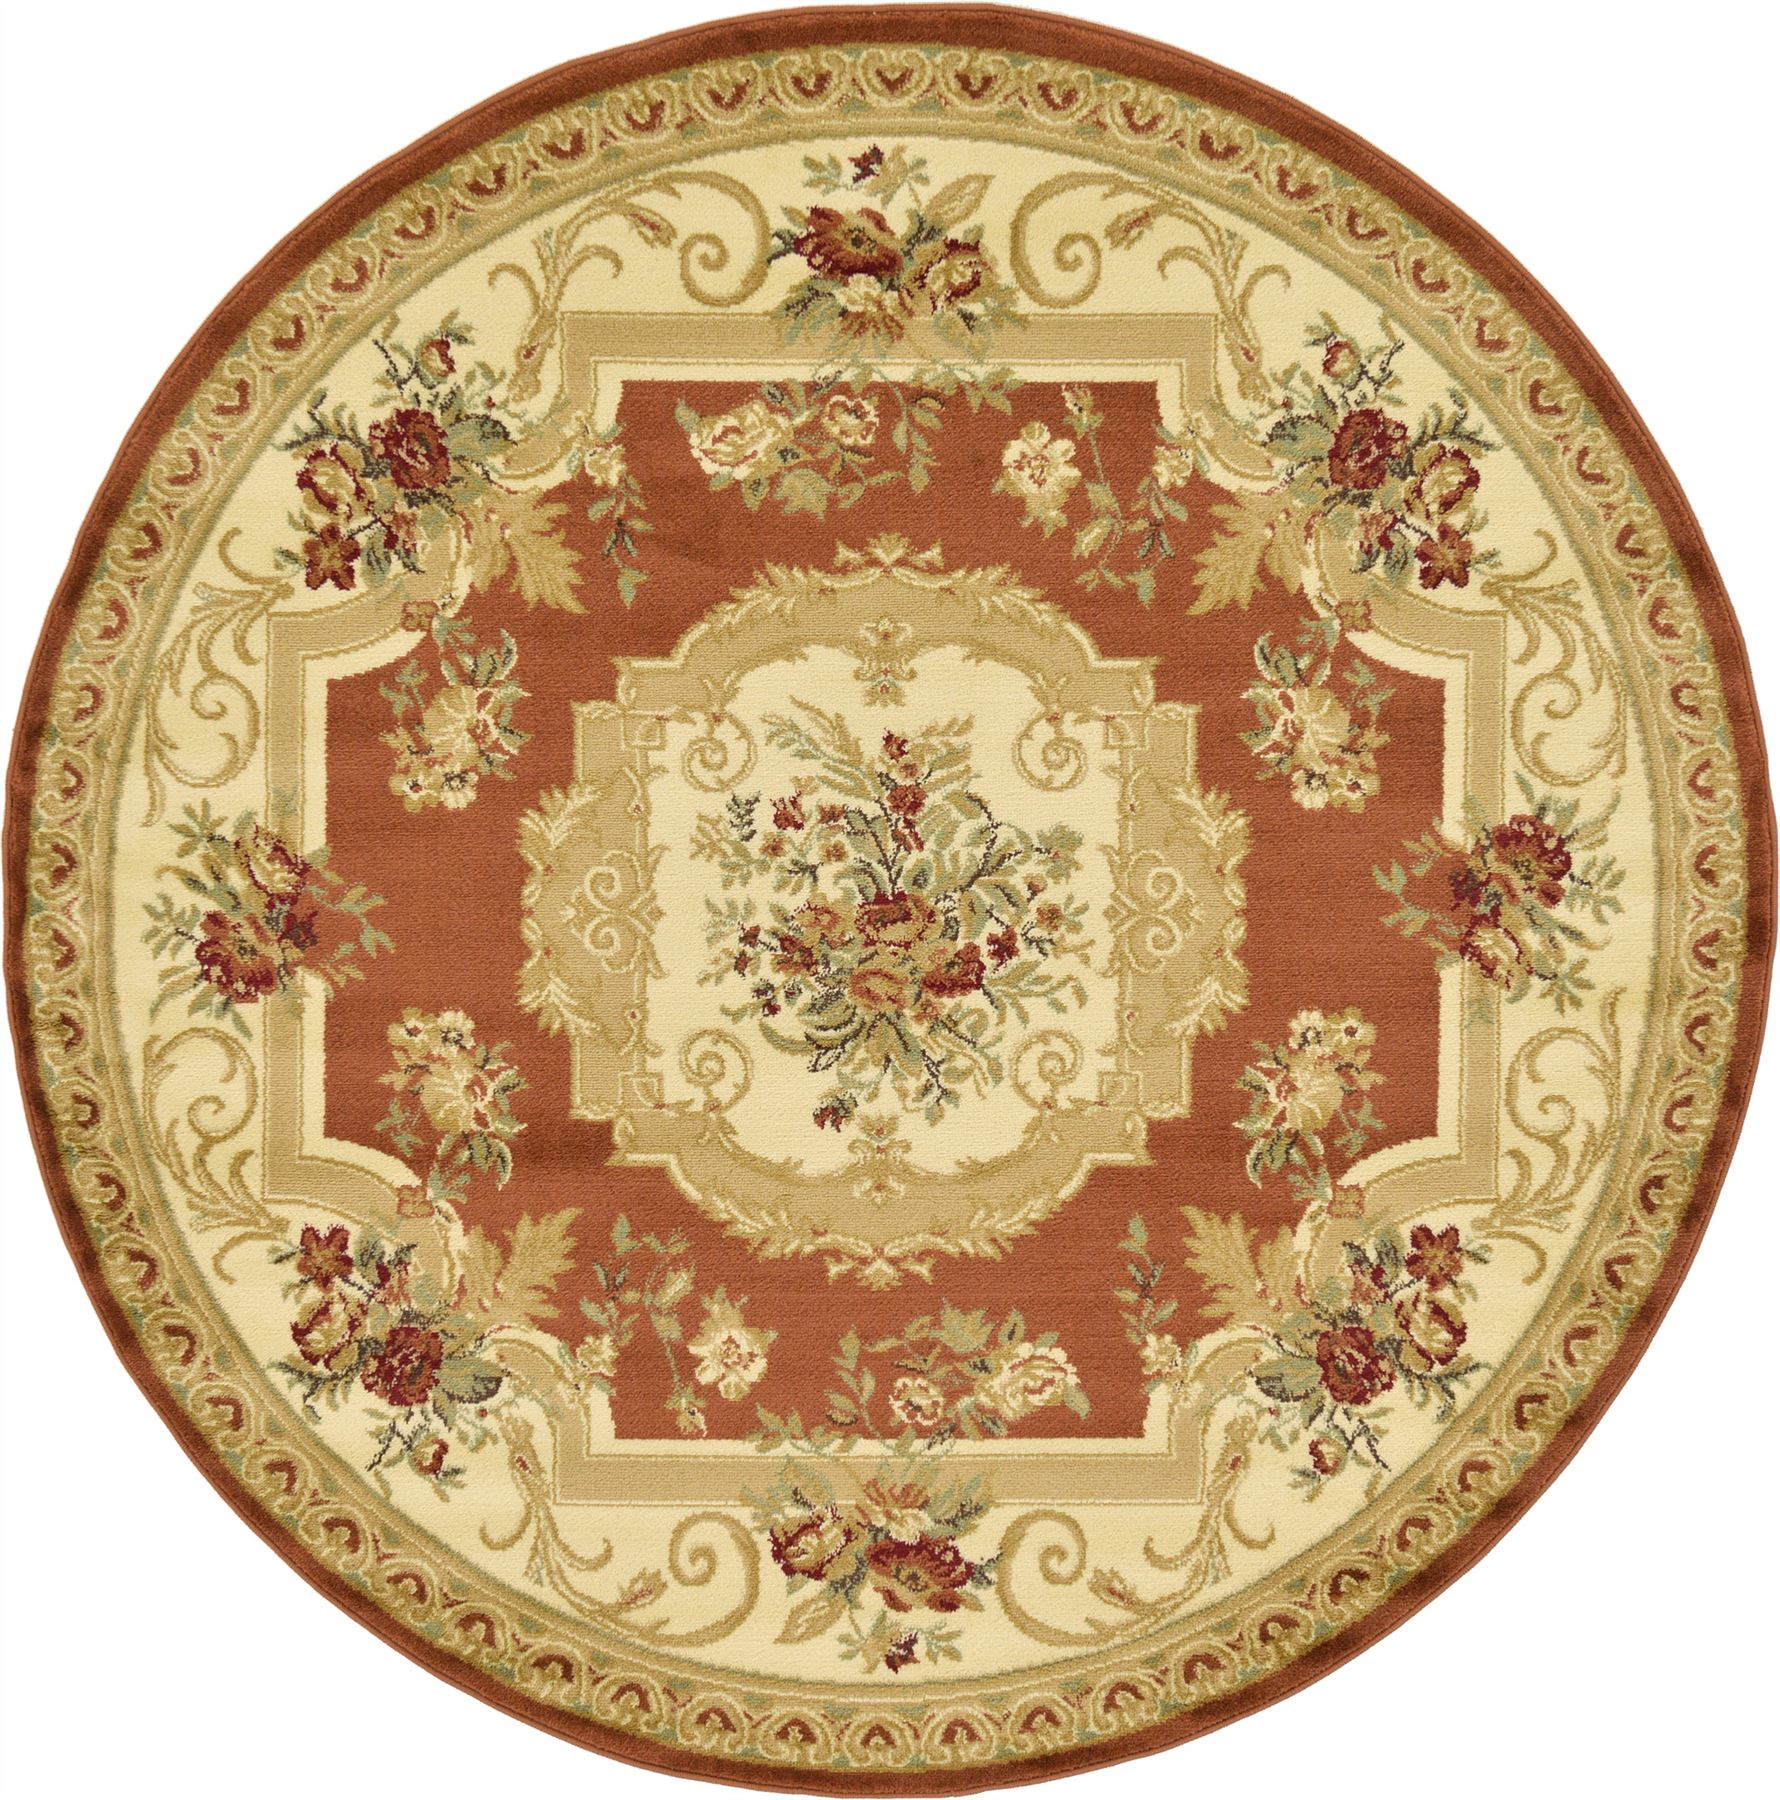 Oriental-Large-Area-Rug-Square-Traditional-Country-Round-Carpet-Medallion-Small thumbnail 10